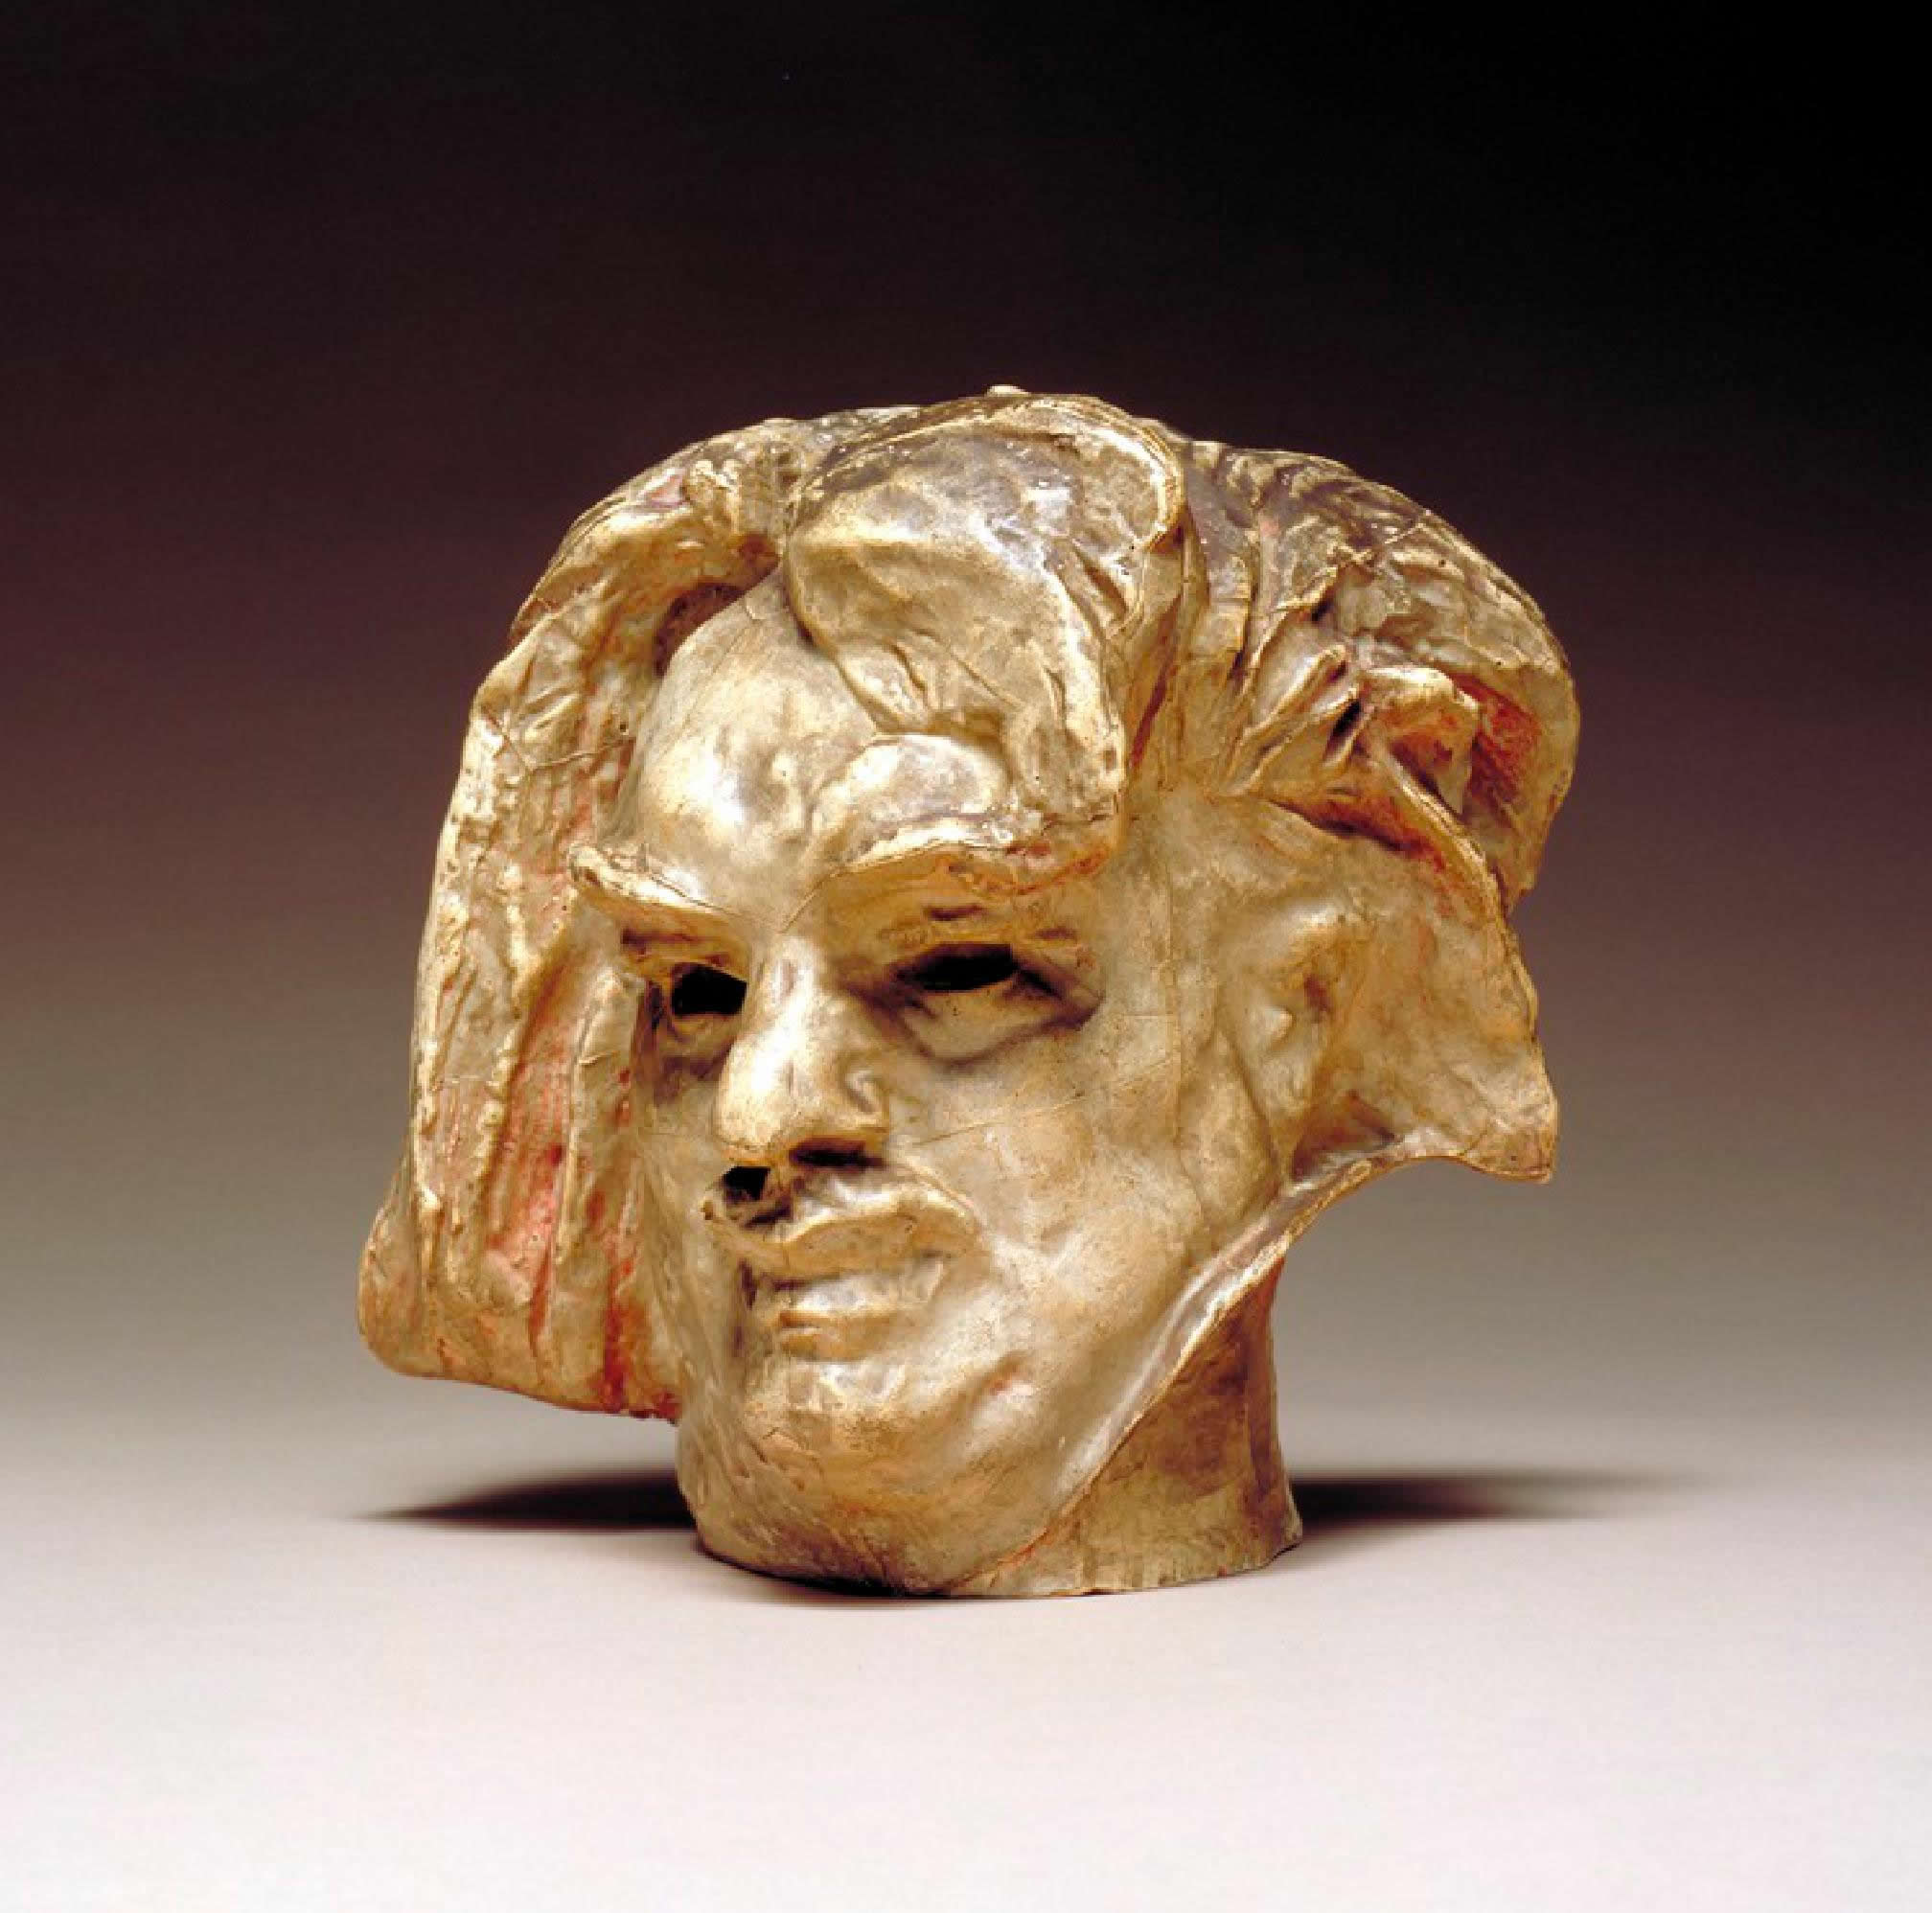 A 3D printed replica of Auguste Rodin's Hanako and Head of Balzac. Photo via the Nasher Sculpture Center.